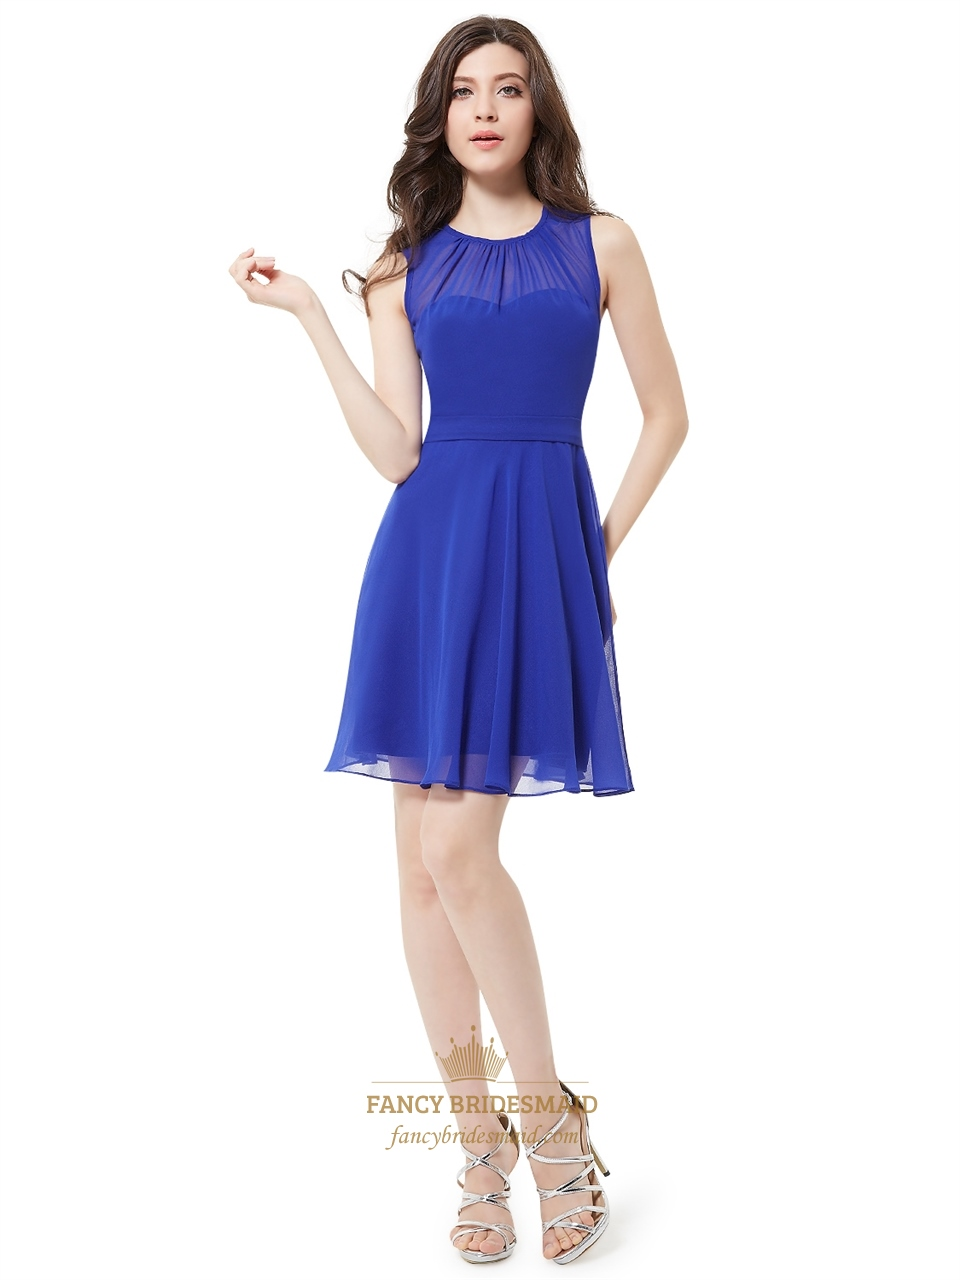 blue chiffon dress